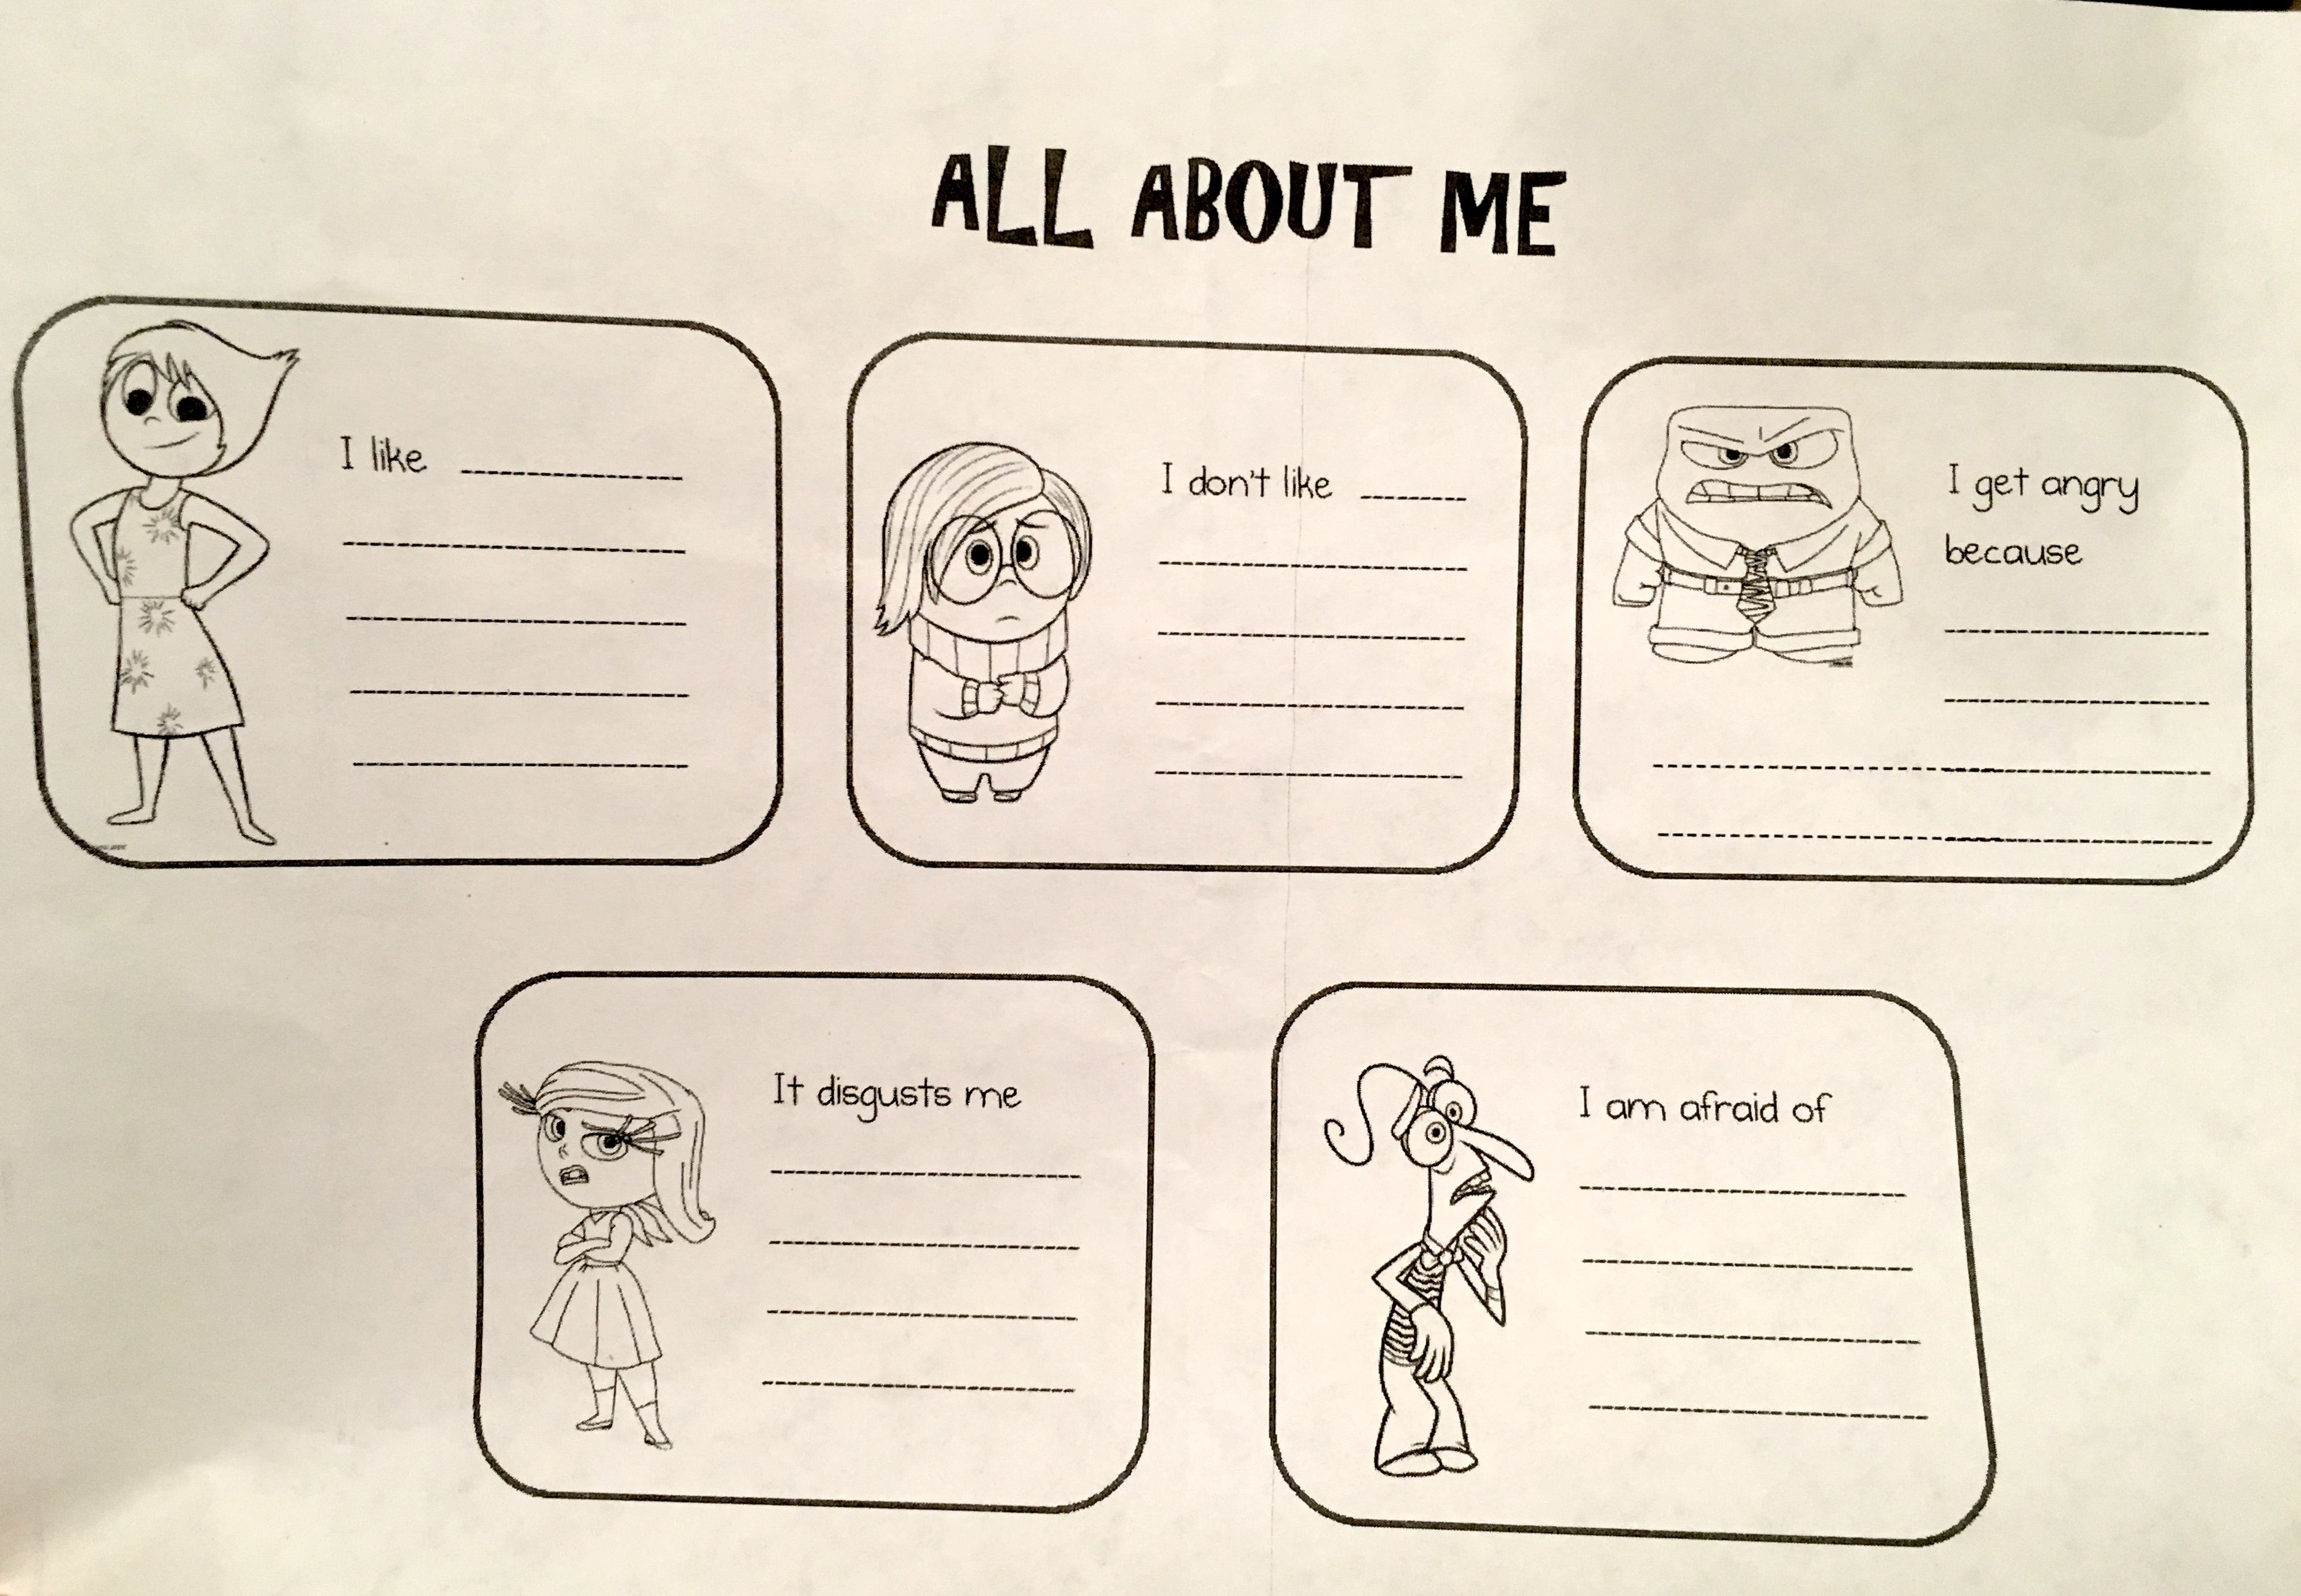 All About Me Worksheet Image By Nalinikids On Relevant